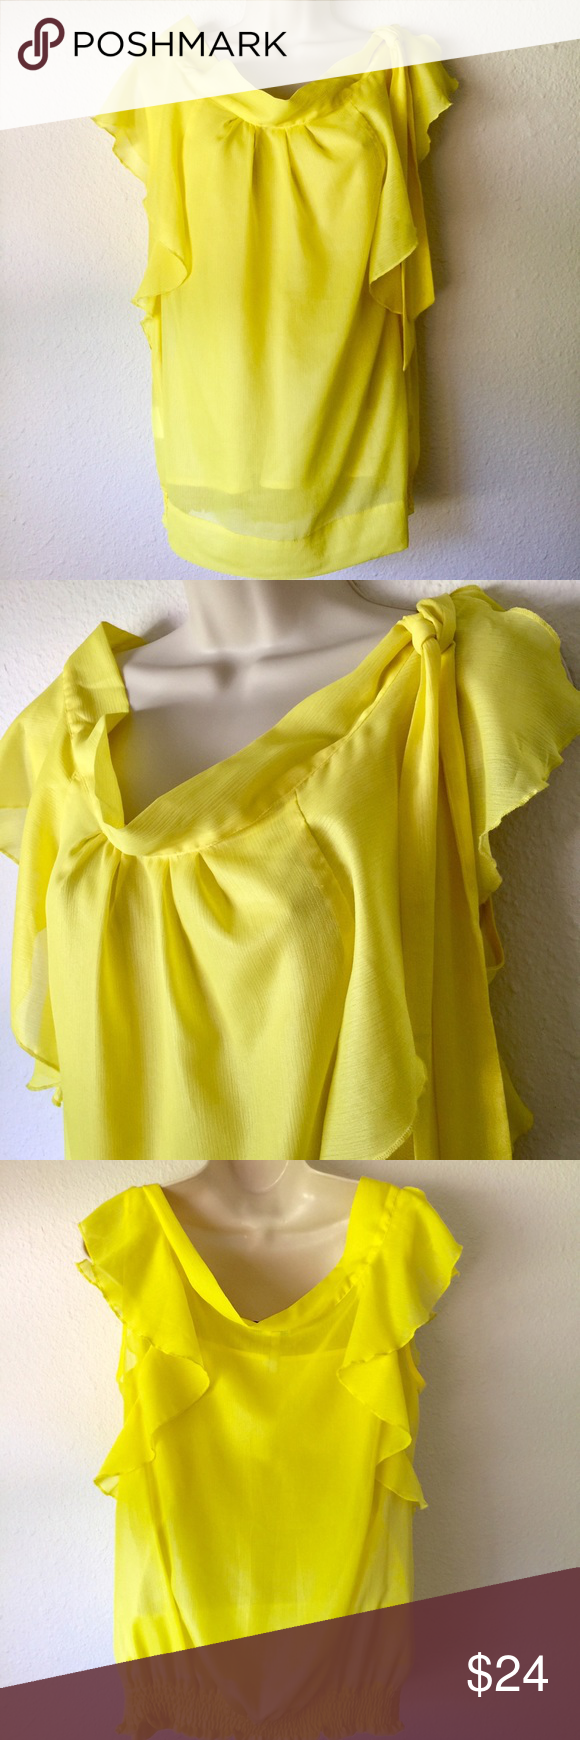 NEW LISTINGMellow yellow blouse Be the bright & bold woman that you are in this …